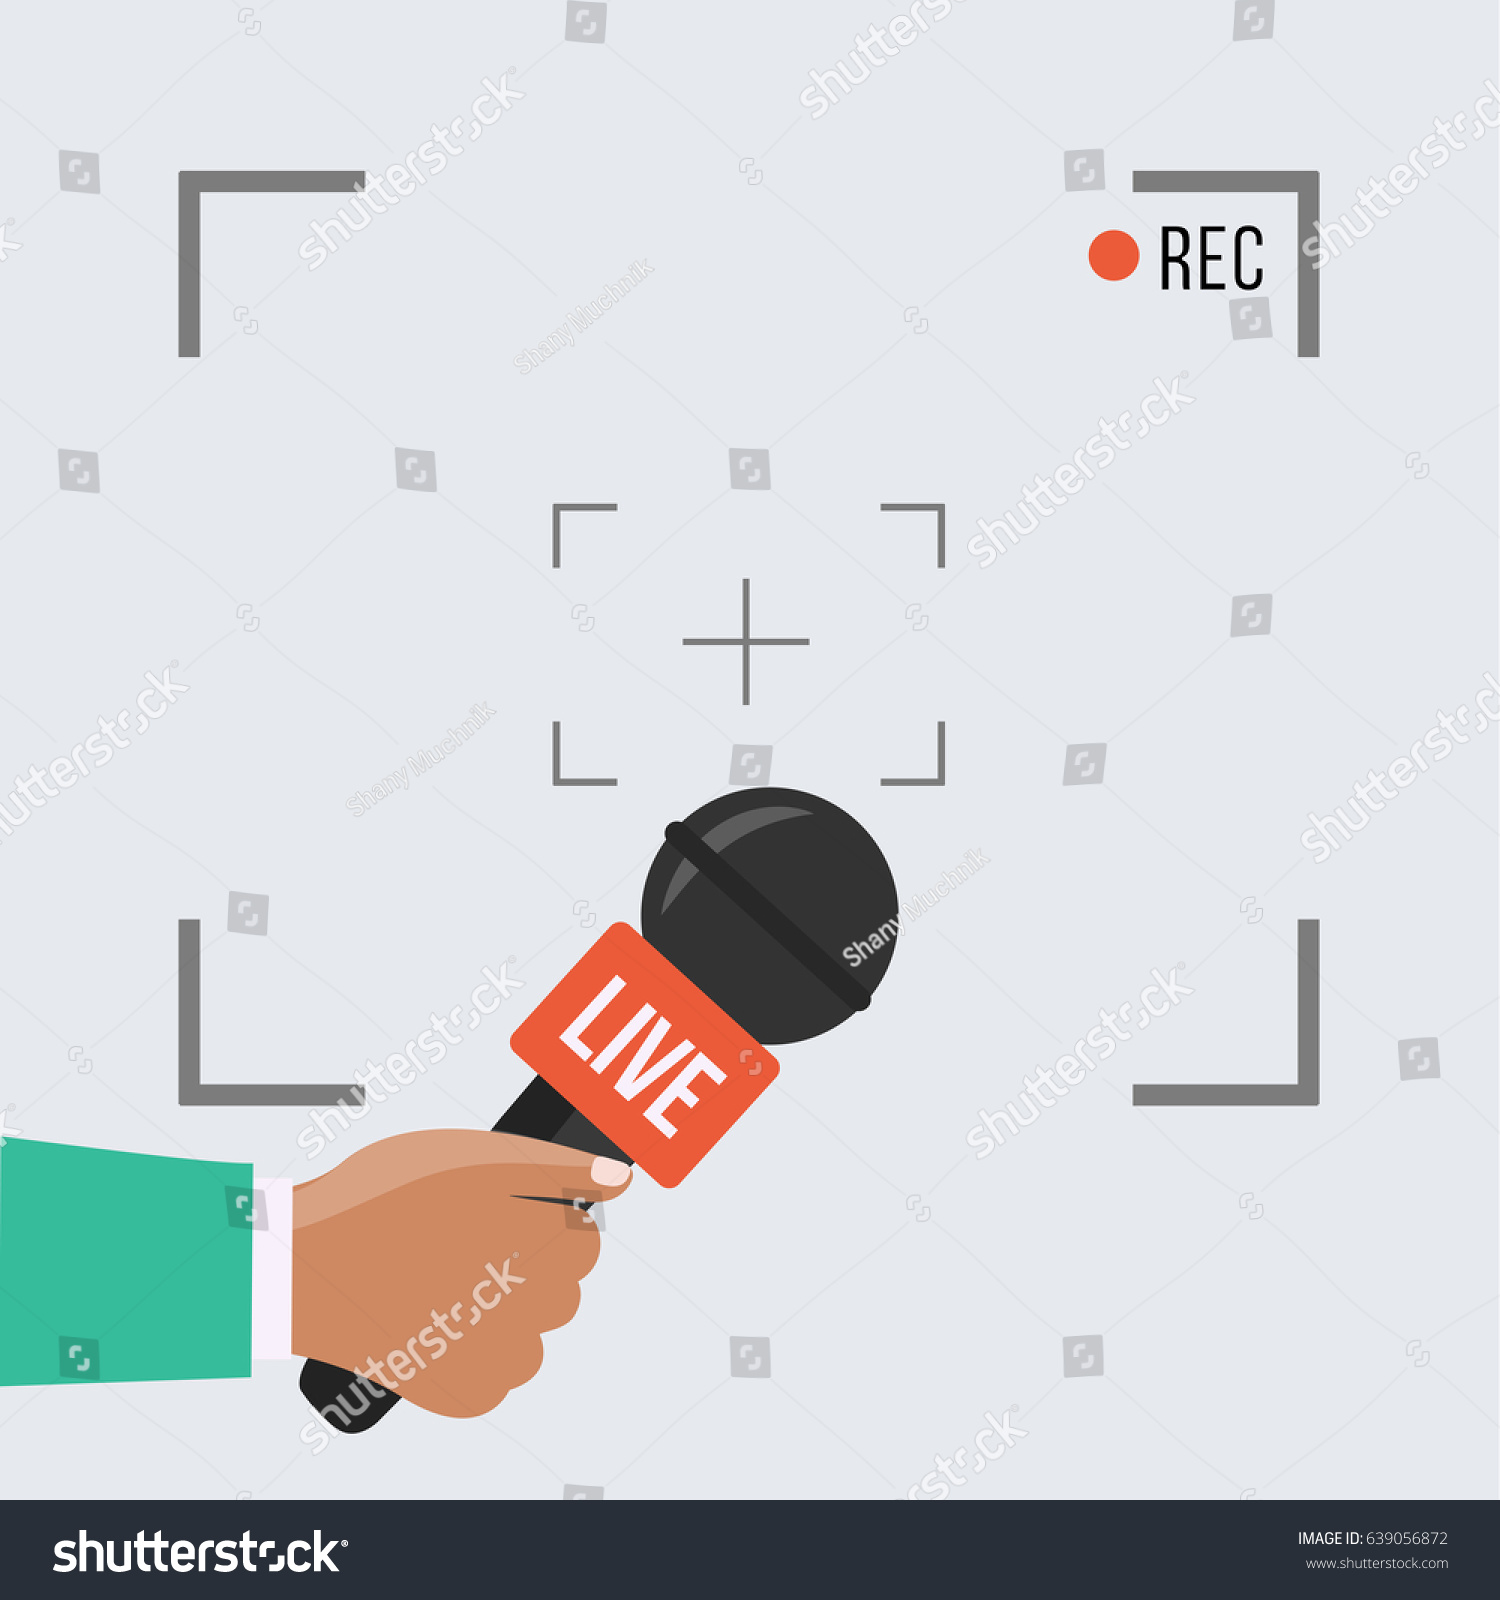 Background Camera Frame Record Rec Vector Stock Vector (Royalty Free ...